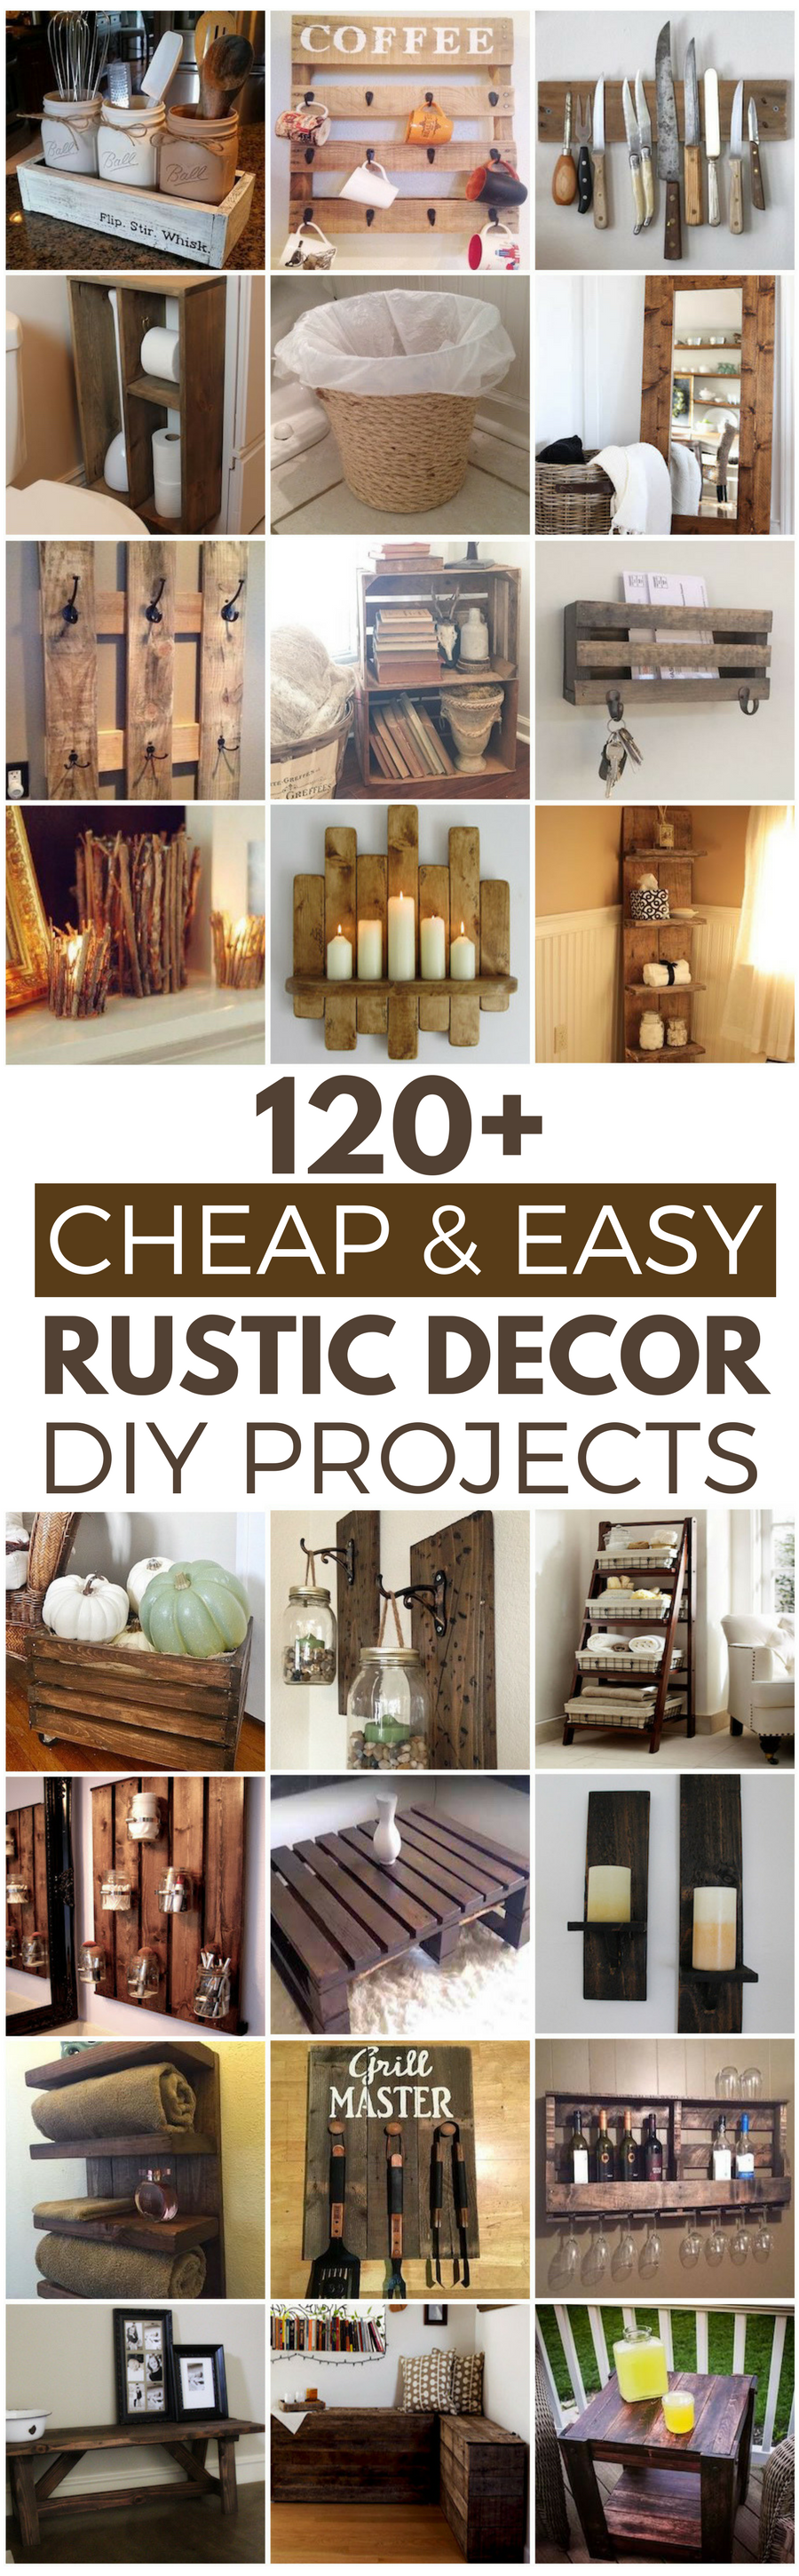 120 Cheap and Easy DIY Rustic Home Decor Ideas | Pinterest | Easy ...